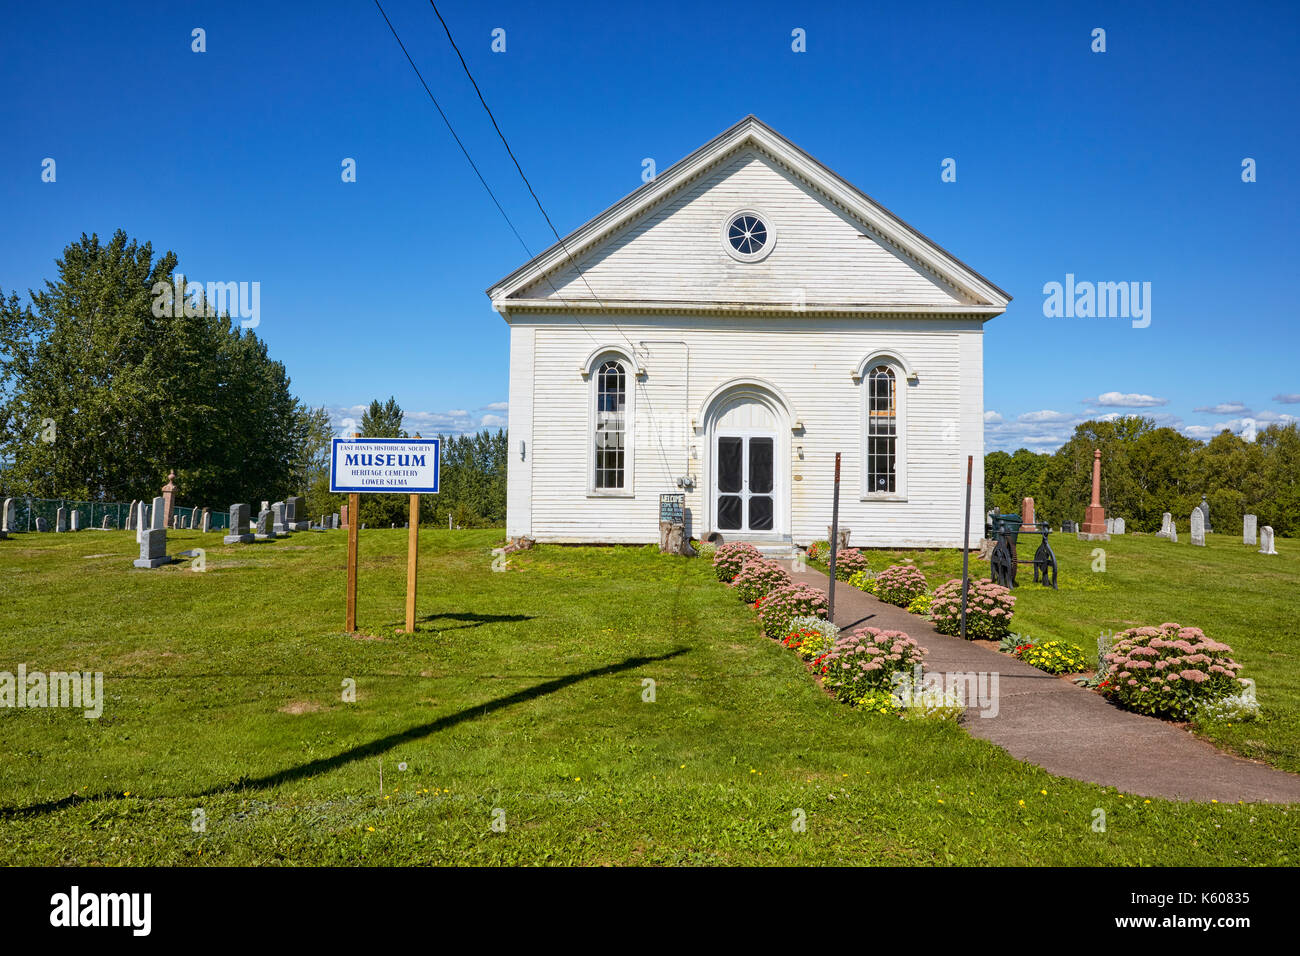 East Hants Historical Society Museum, Heritage Cemetery Lower Selma, Nova Scotia, Canada - Stock Image